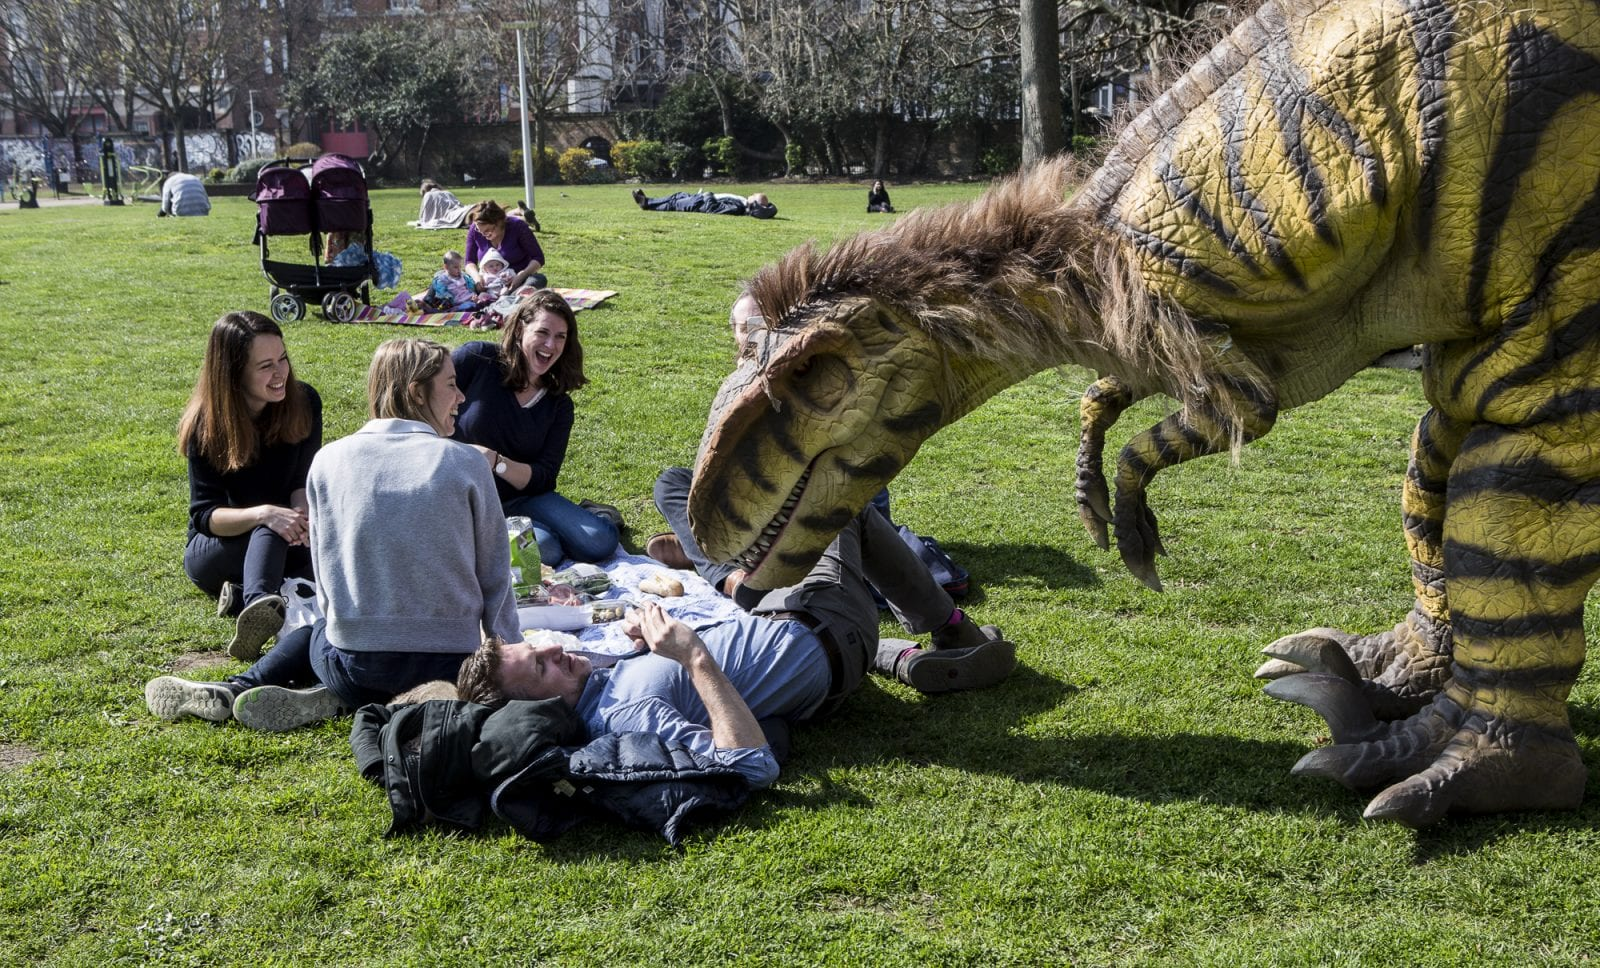 Wythenshawe Park is being transformed into an immersive 'dino kingdom' this summer, The Manc